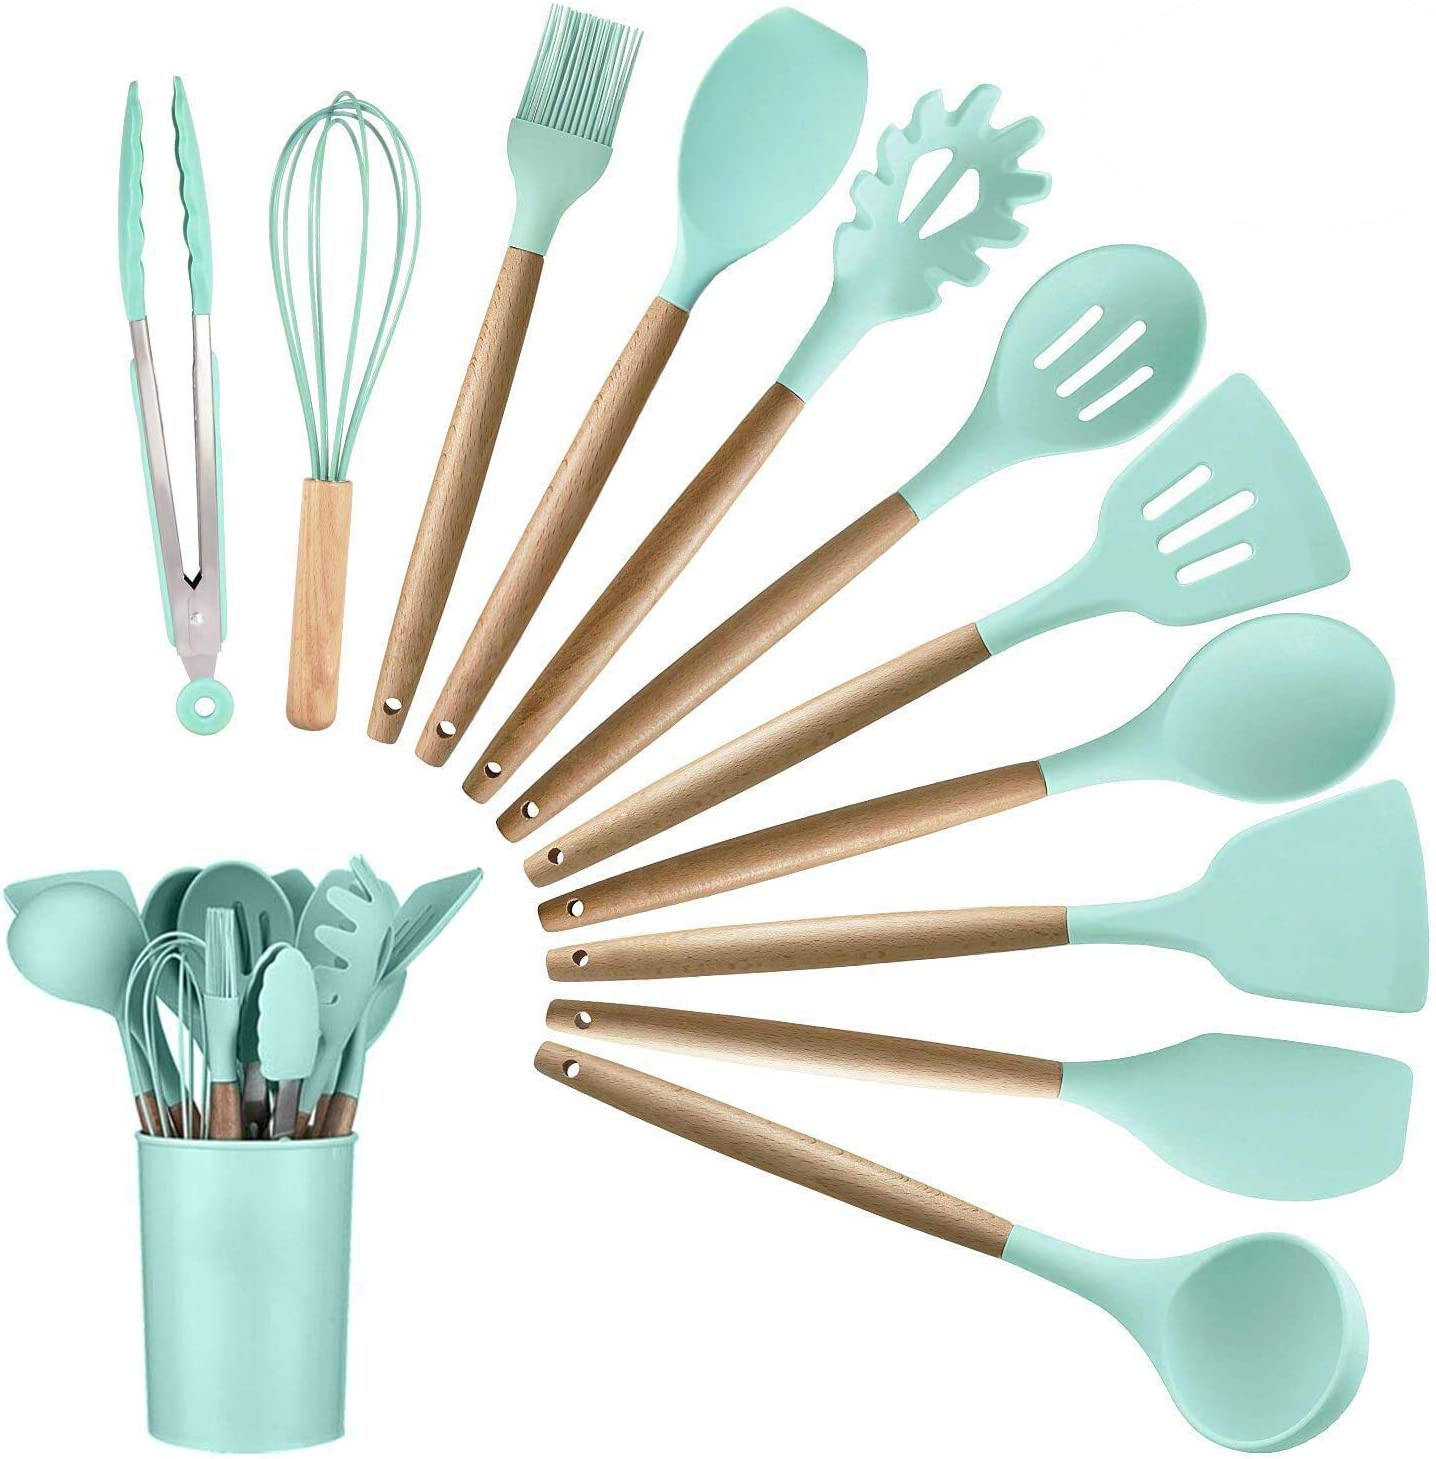 12PCS Kitchen Silicone Spatula Utensil Set Silicone Cooking Utensils Set Spatulas Silicone Heat Resistant Wooden Spoons Utensils Non-Stick for Cooking Kitchen Gadgets Tools